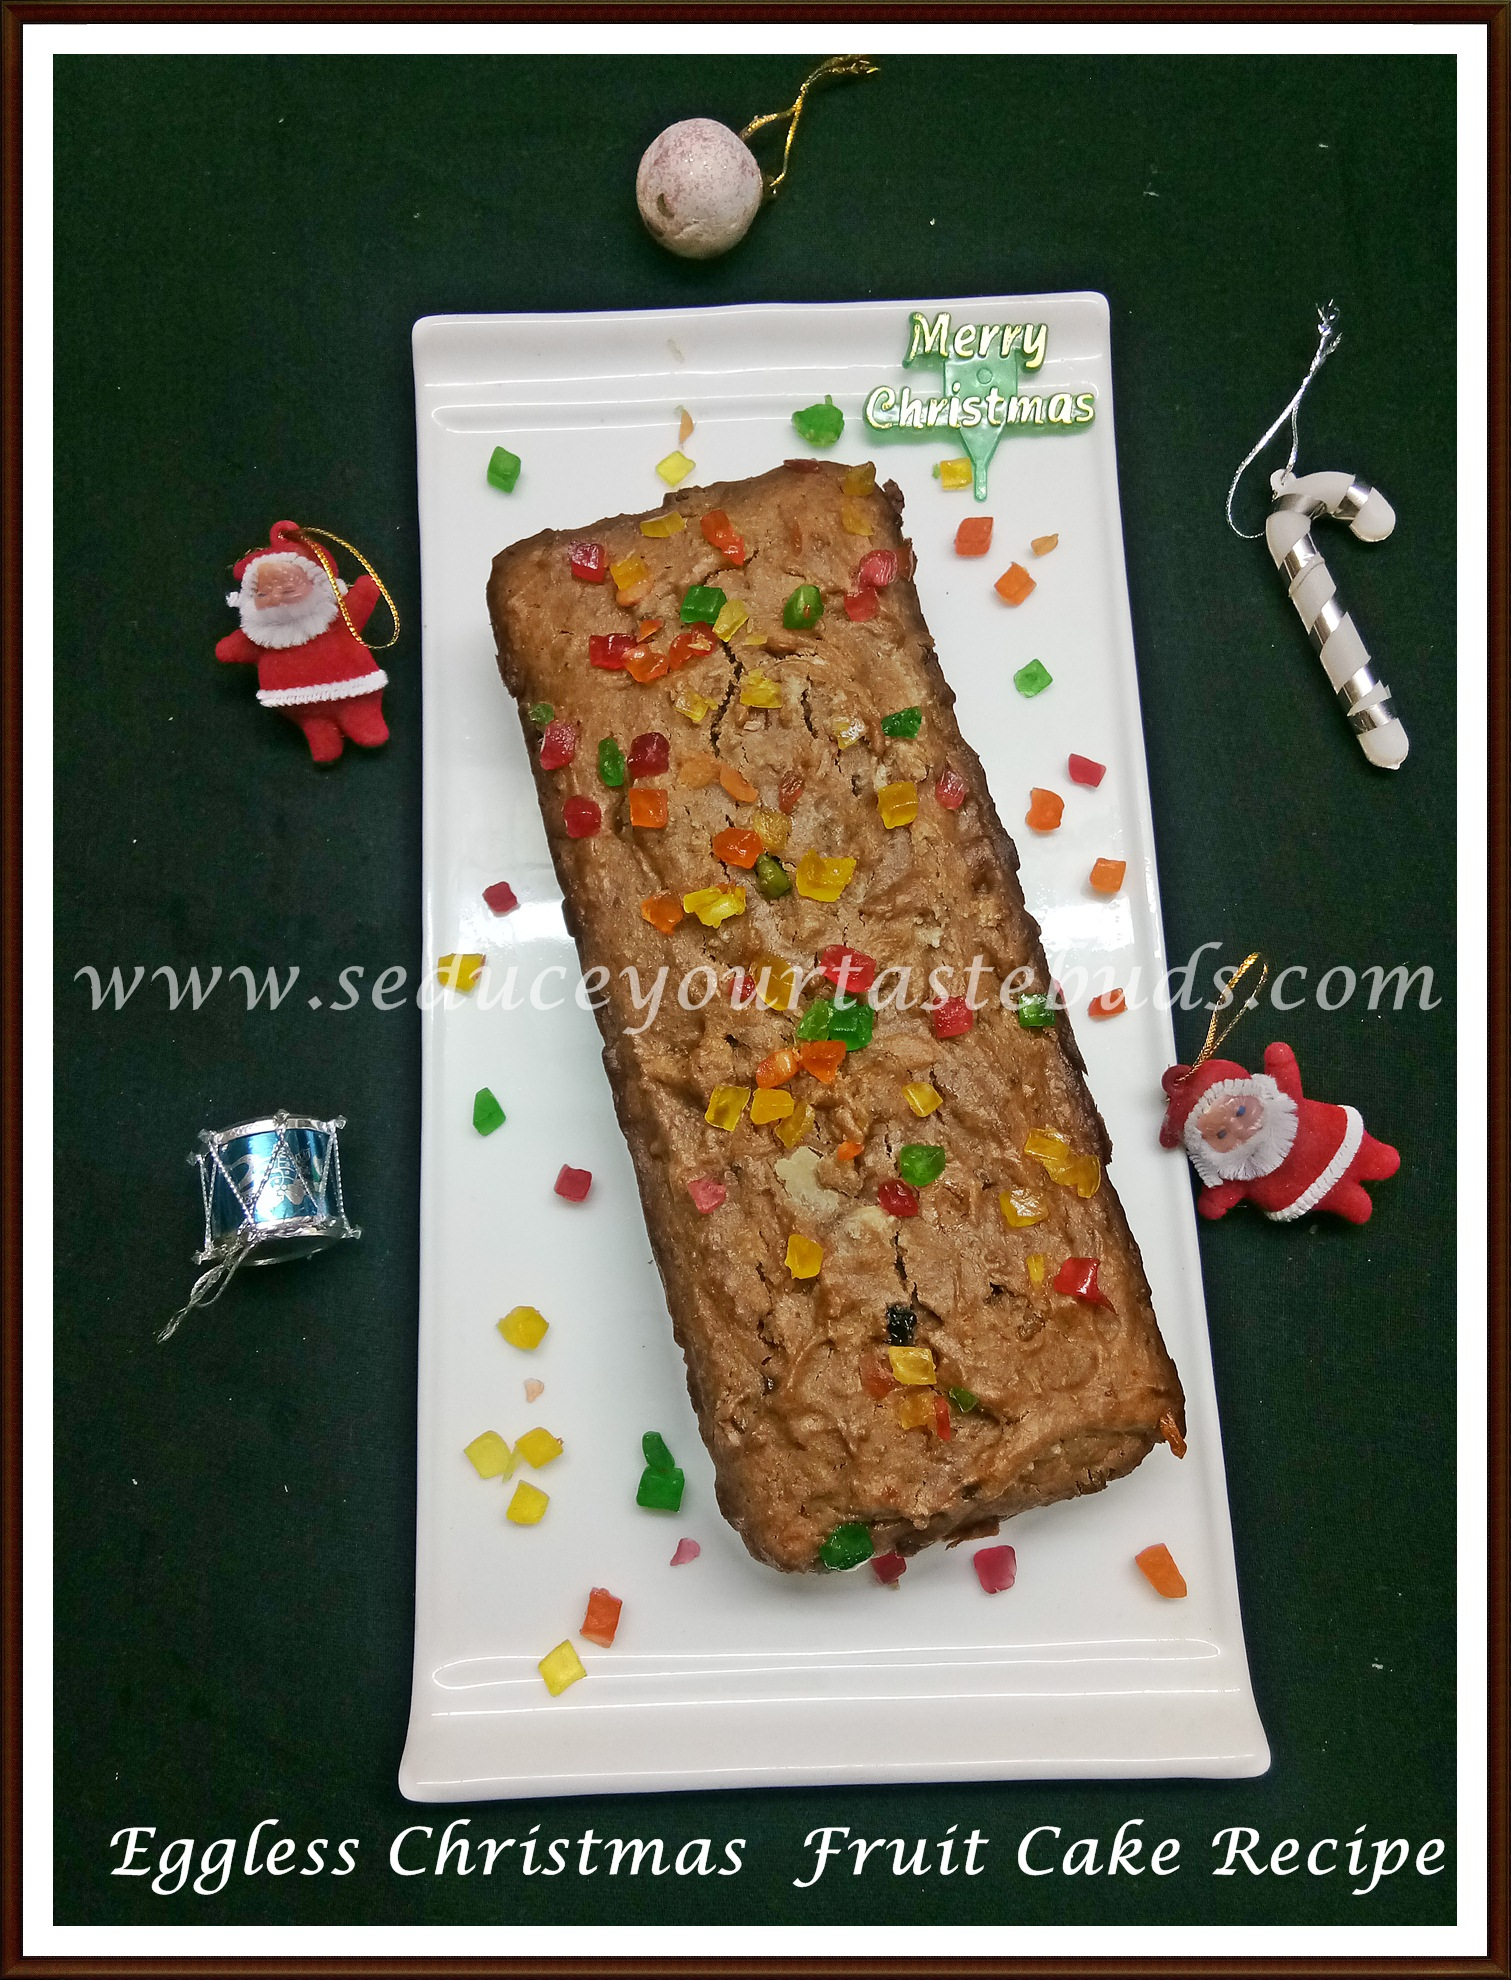 Eggless Christmas Fruit Cake Recipe Using Mincemeat Seduce Your Tastebuds